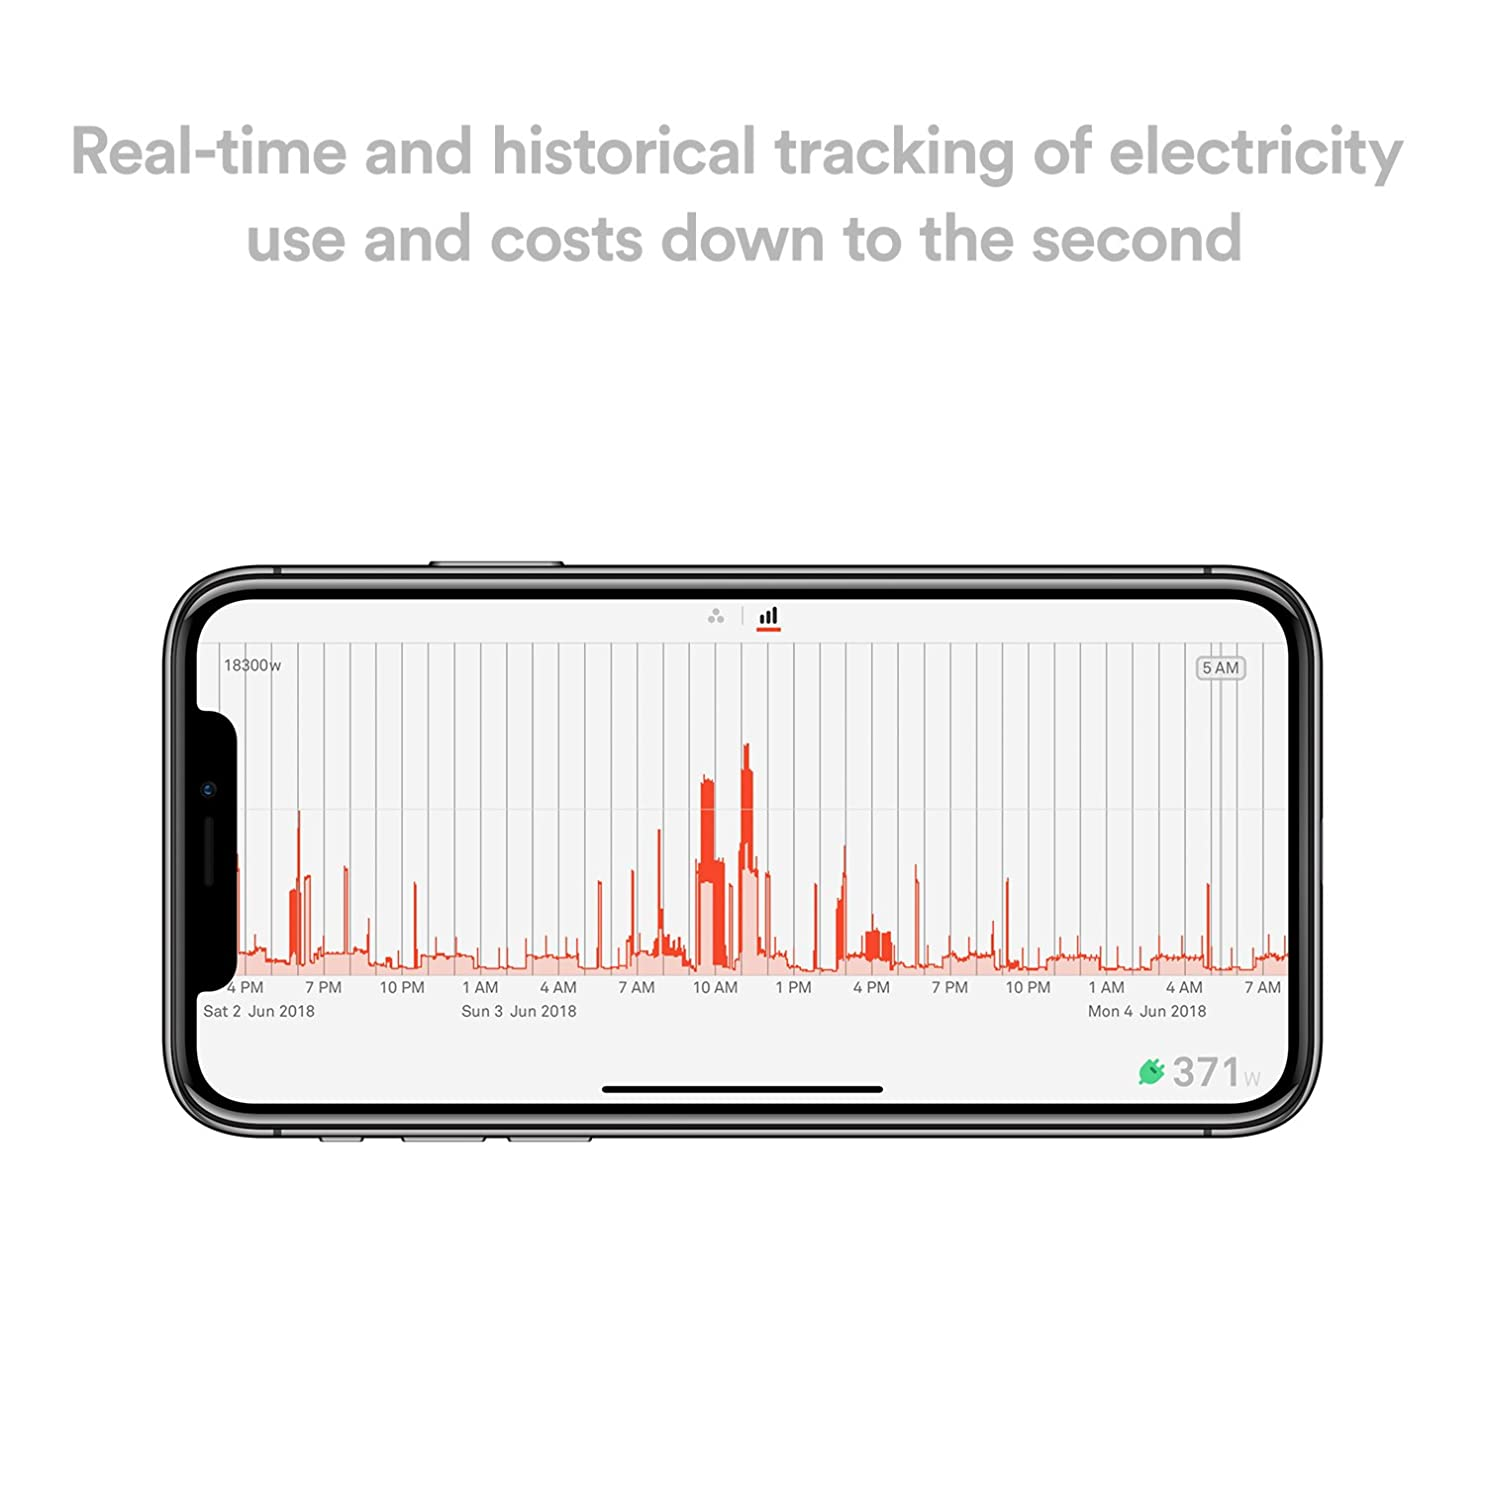 Sense Energy Monitor Electricity Usage To Track Protection Circuit For Induction Motor Your Electrical Home In Real Time